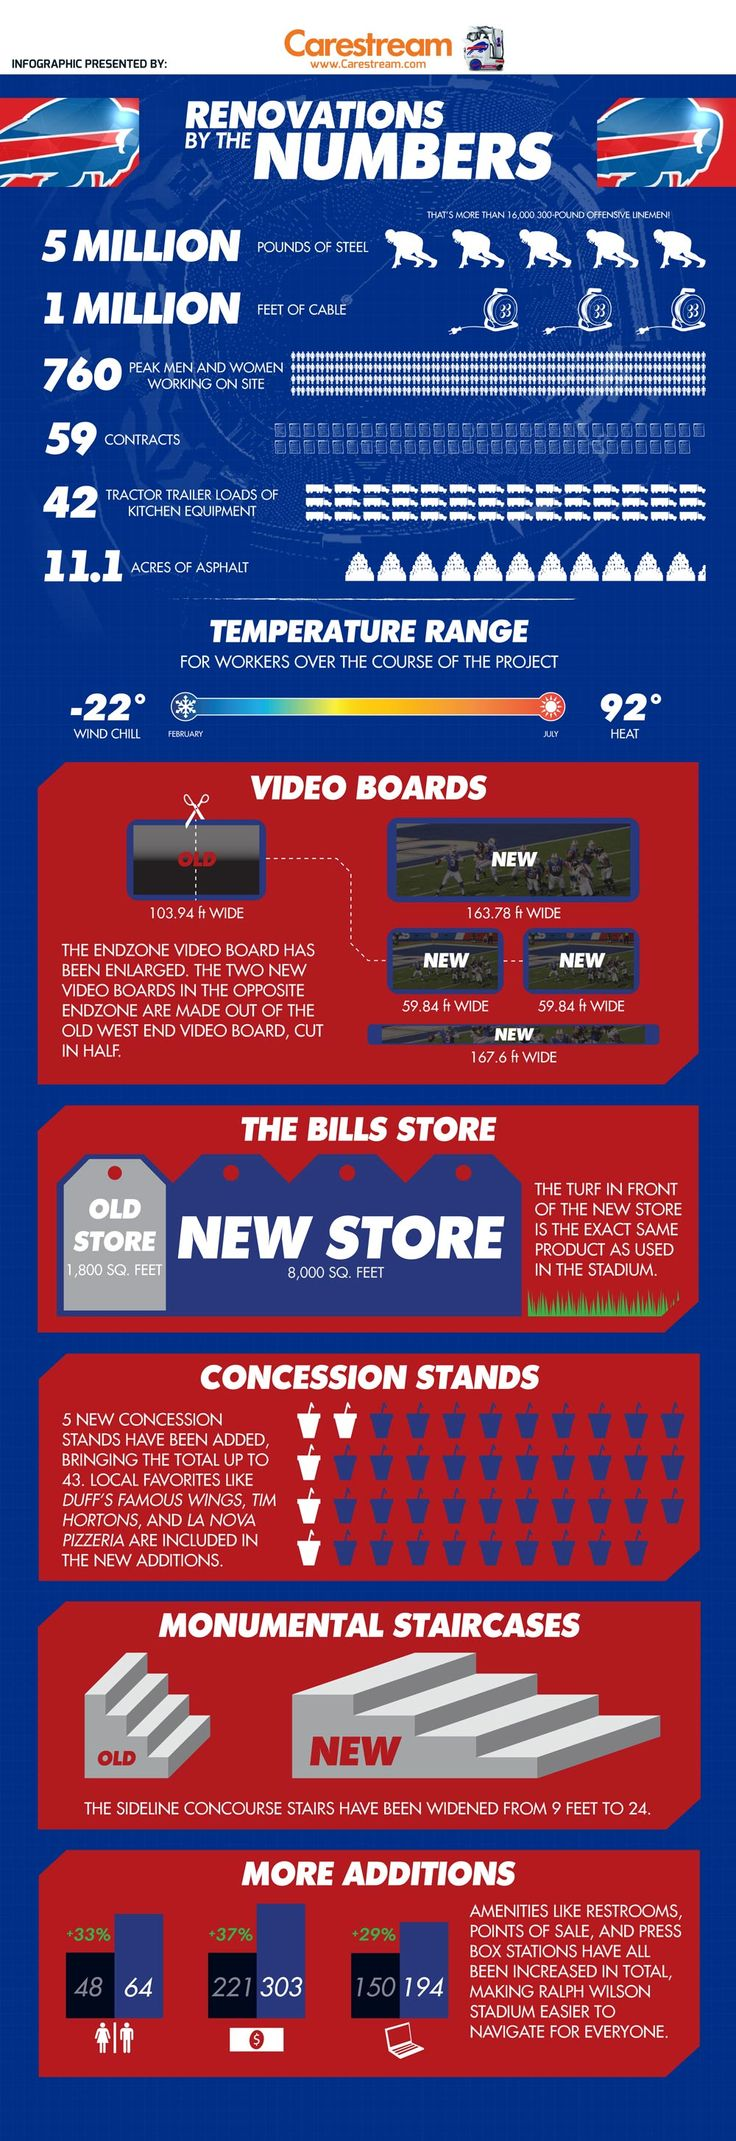 INFOGRAPHIC: Renovations at Ralph Wilson Stadium